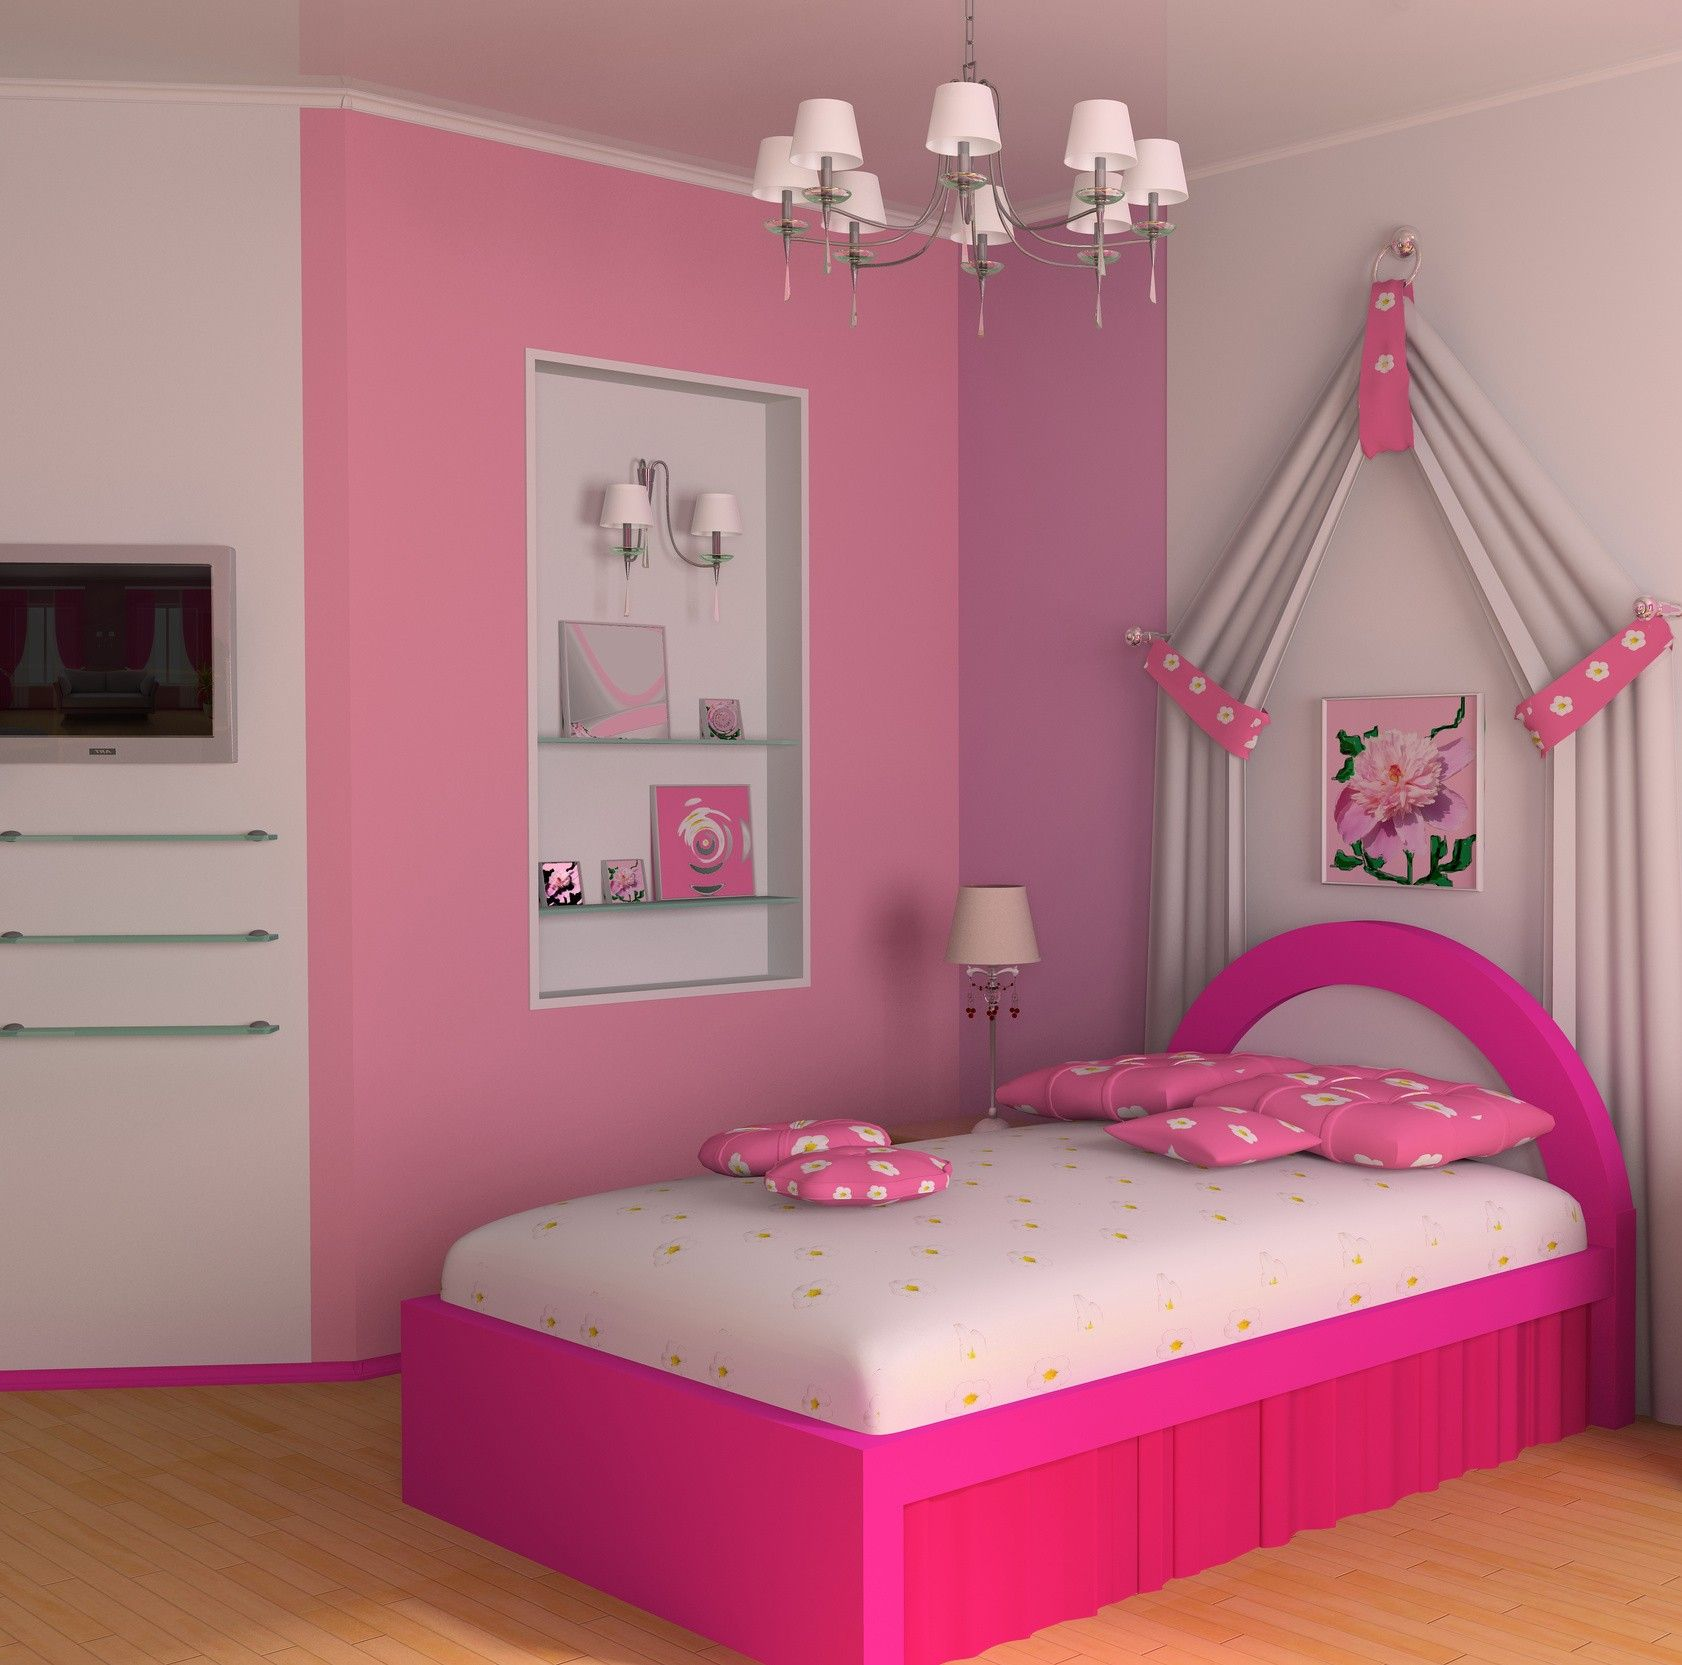 Pink bedroom decoration - Pink Bedroom Design